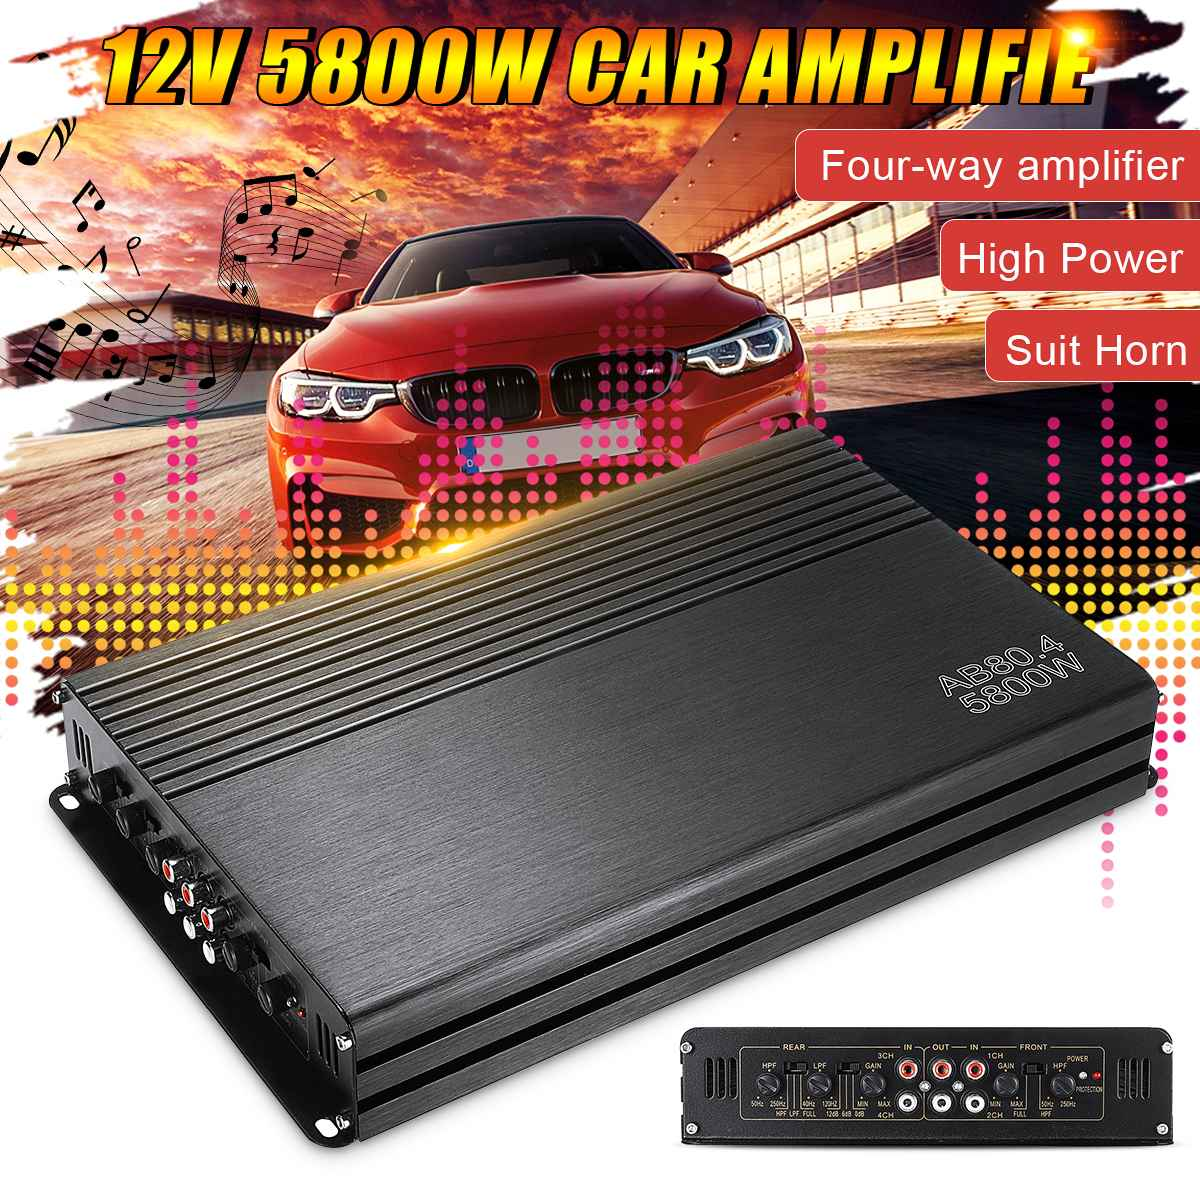 5800W 12V 4 Channel Car Amplifier Subwoofer High Power Vehicle Audio Amplifier HiFi Stereo Car Sound Amplifiers